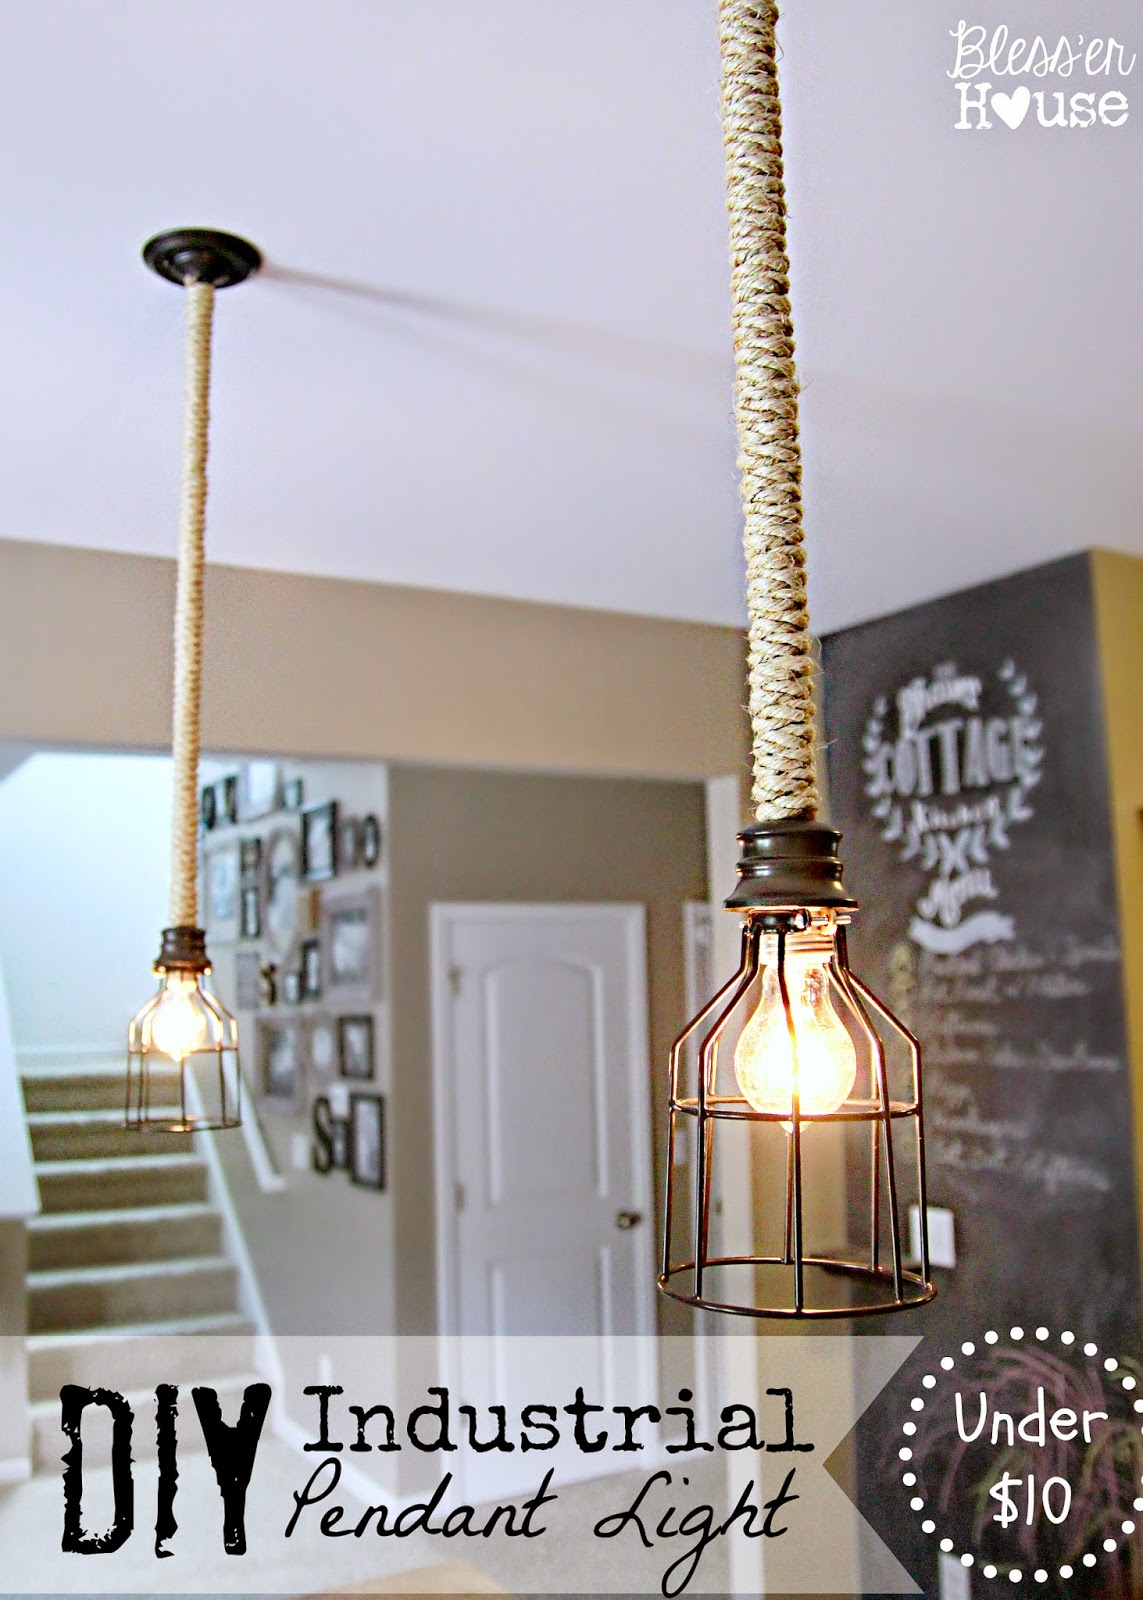 DIY Industrial Pendant Light for Under $10 - Bless\'er House